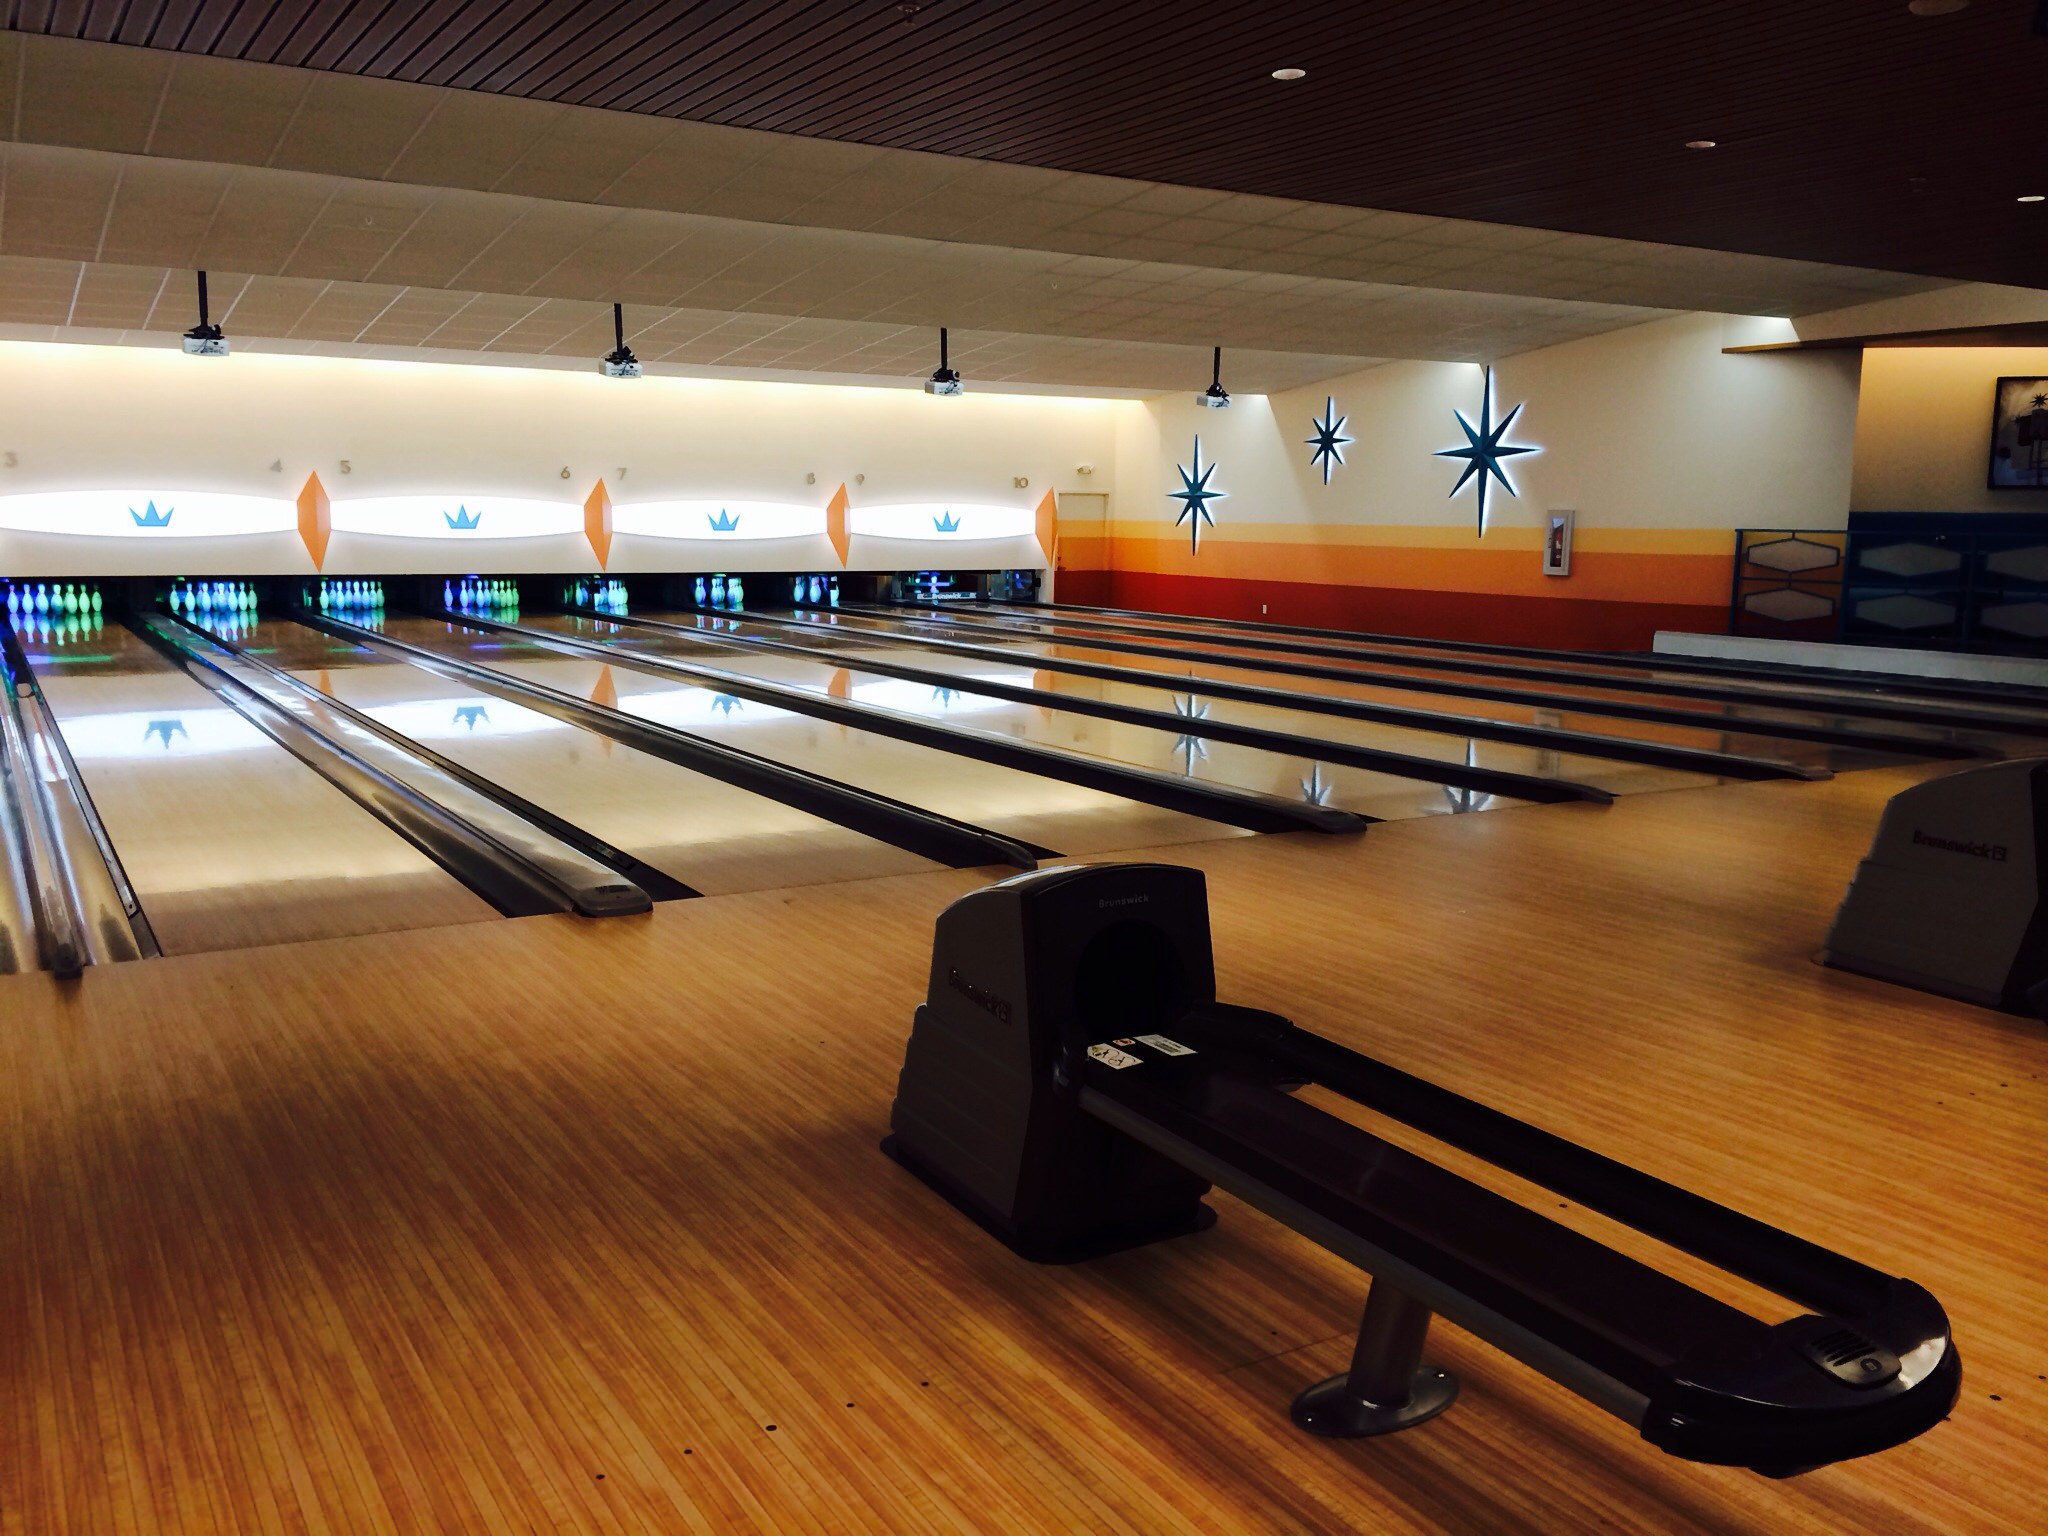 retro bowling alley